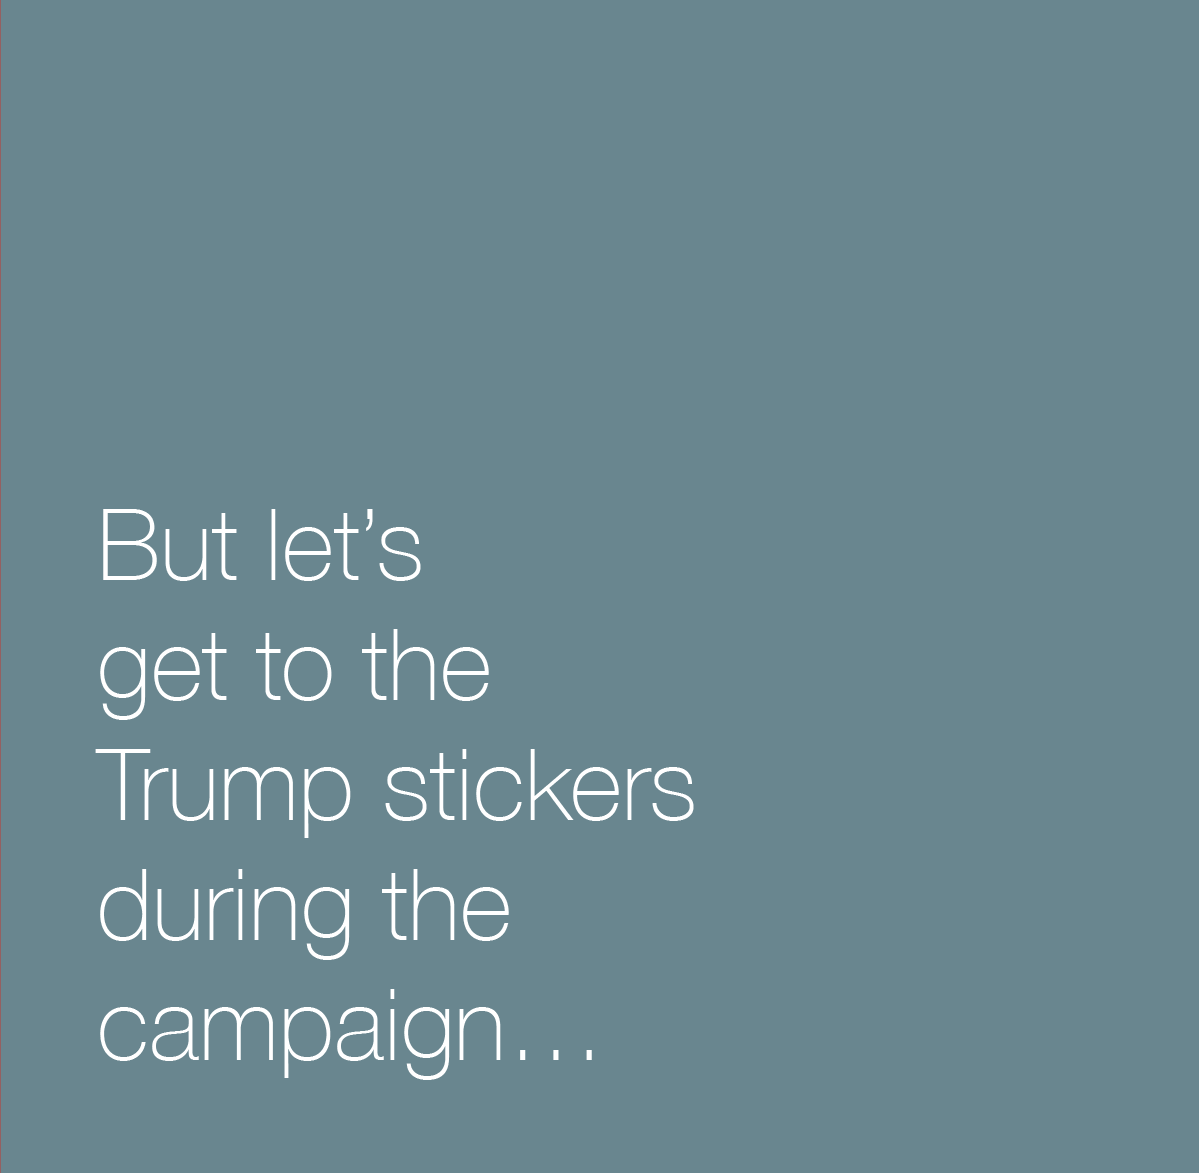 Copy of But let's get to the Trump stickers during the 2016 campaign